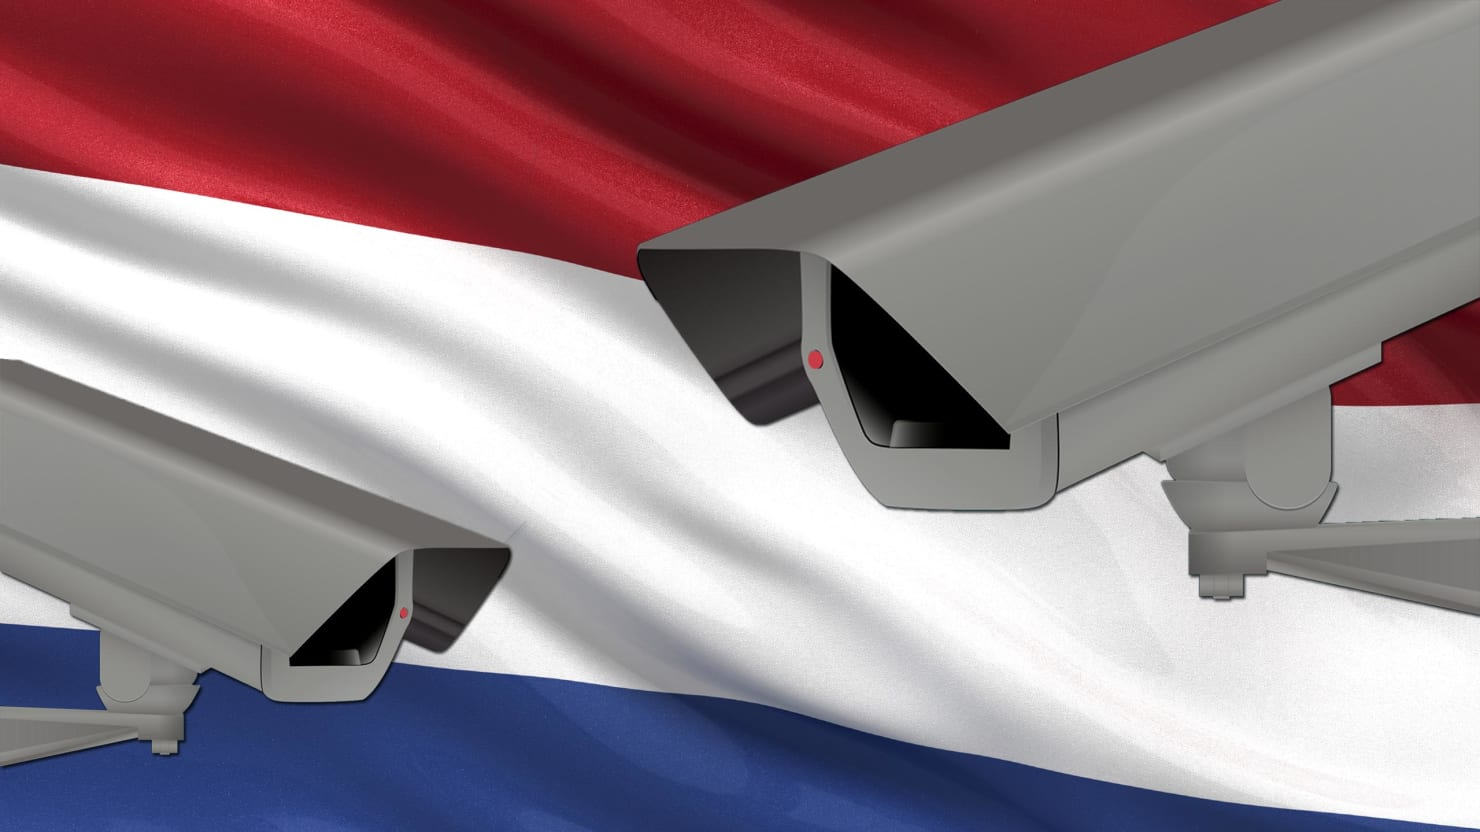 """The Dutch """"Surveillance Kings of Europe"""" Are About to Get Even Nosier"""